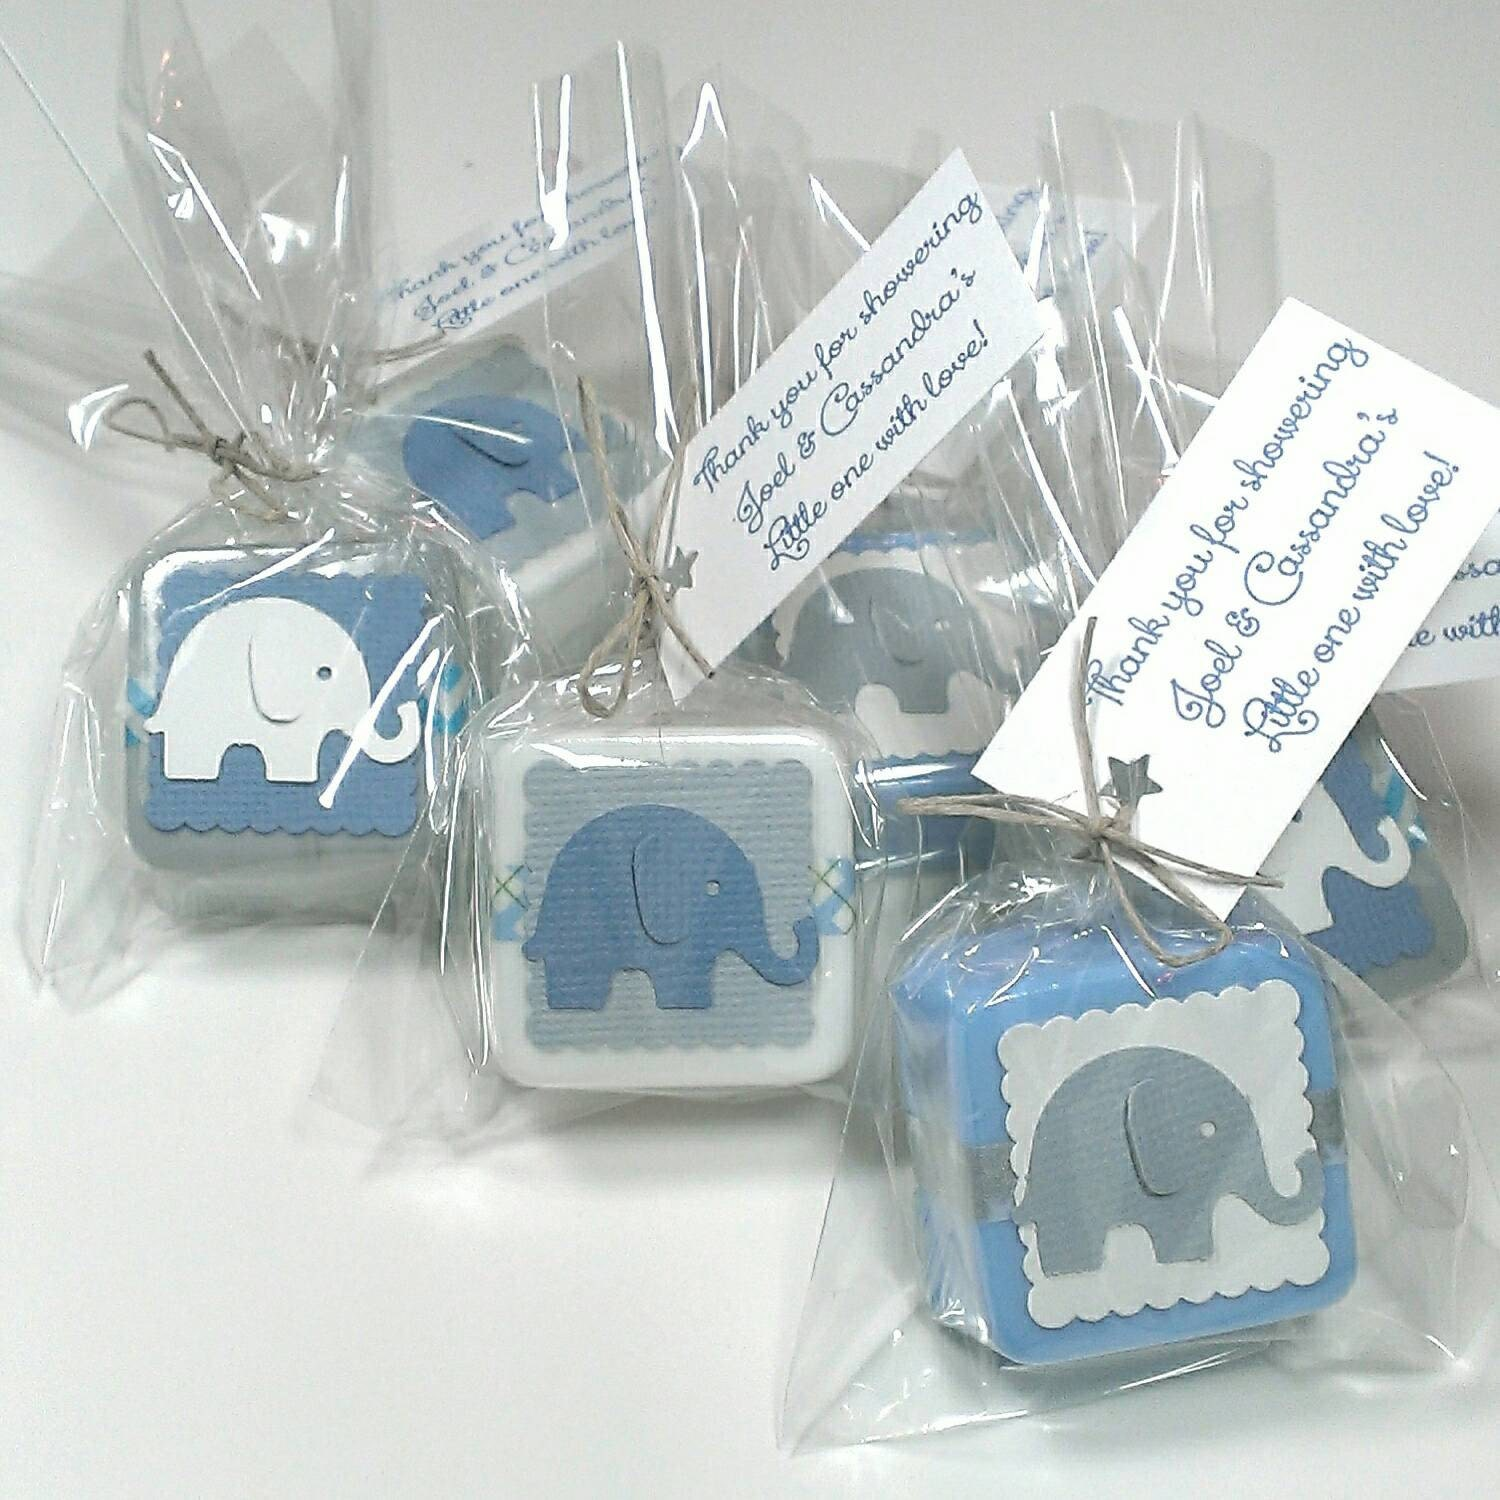 Elephant Themed Baby Shower: Baby Shower Favors Elephant Baby Shower Favors Boy Baby